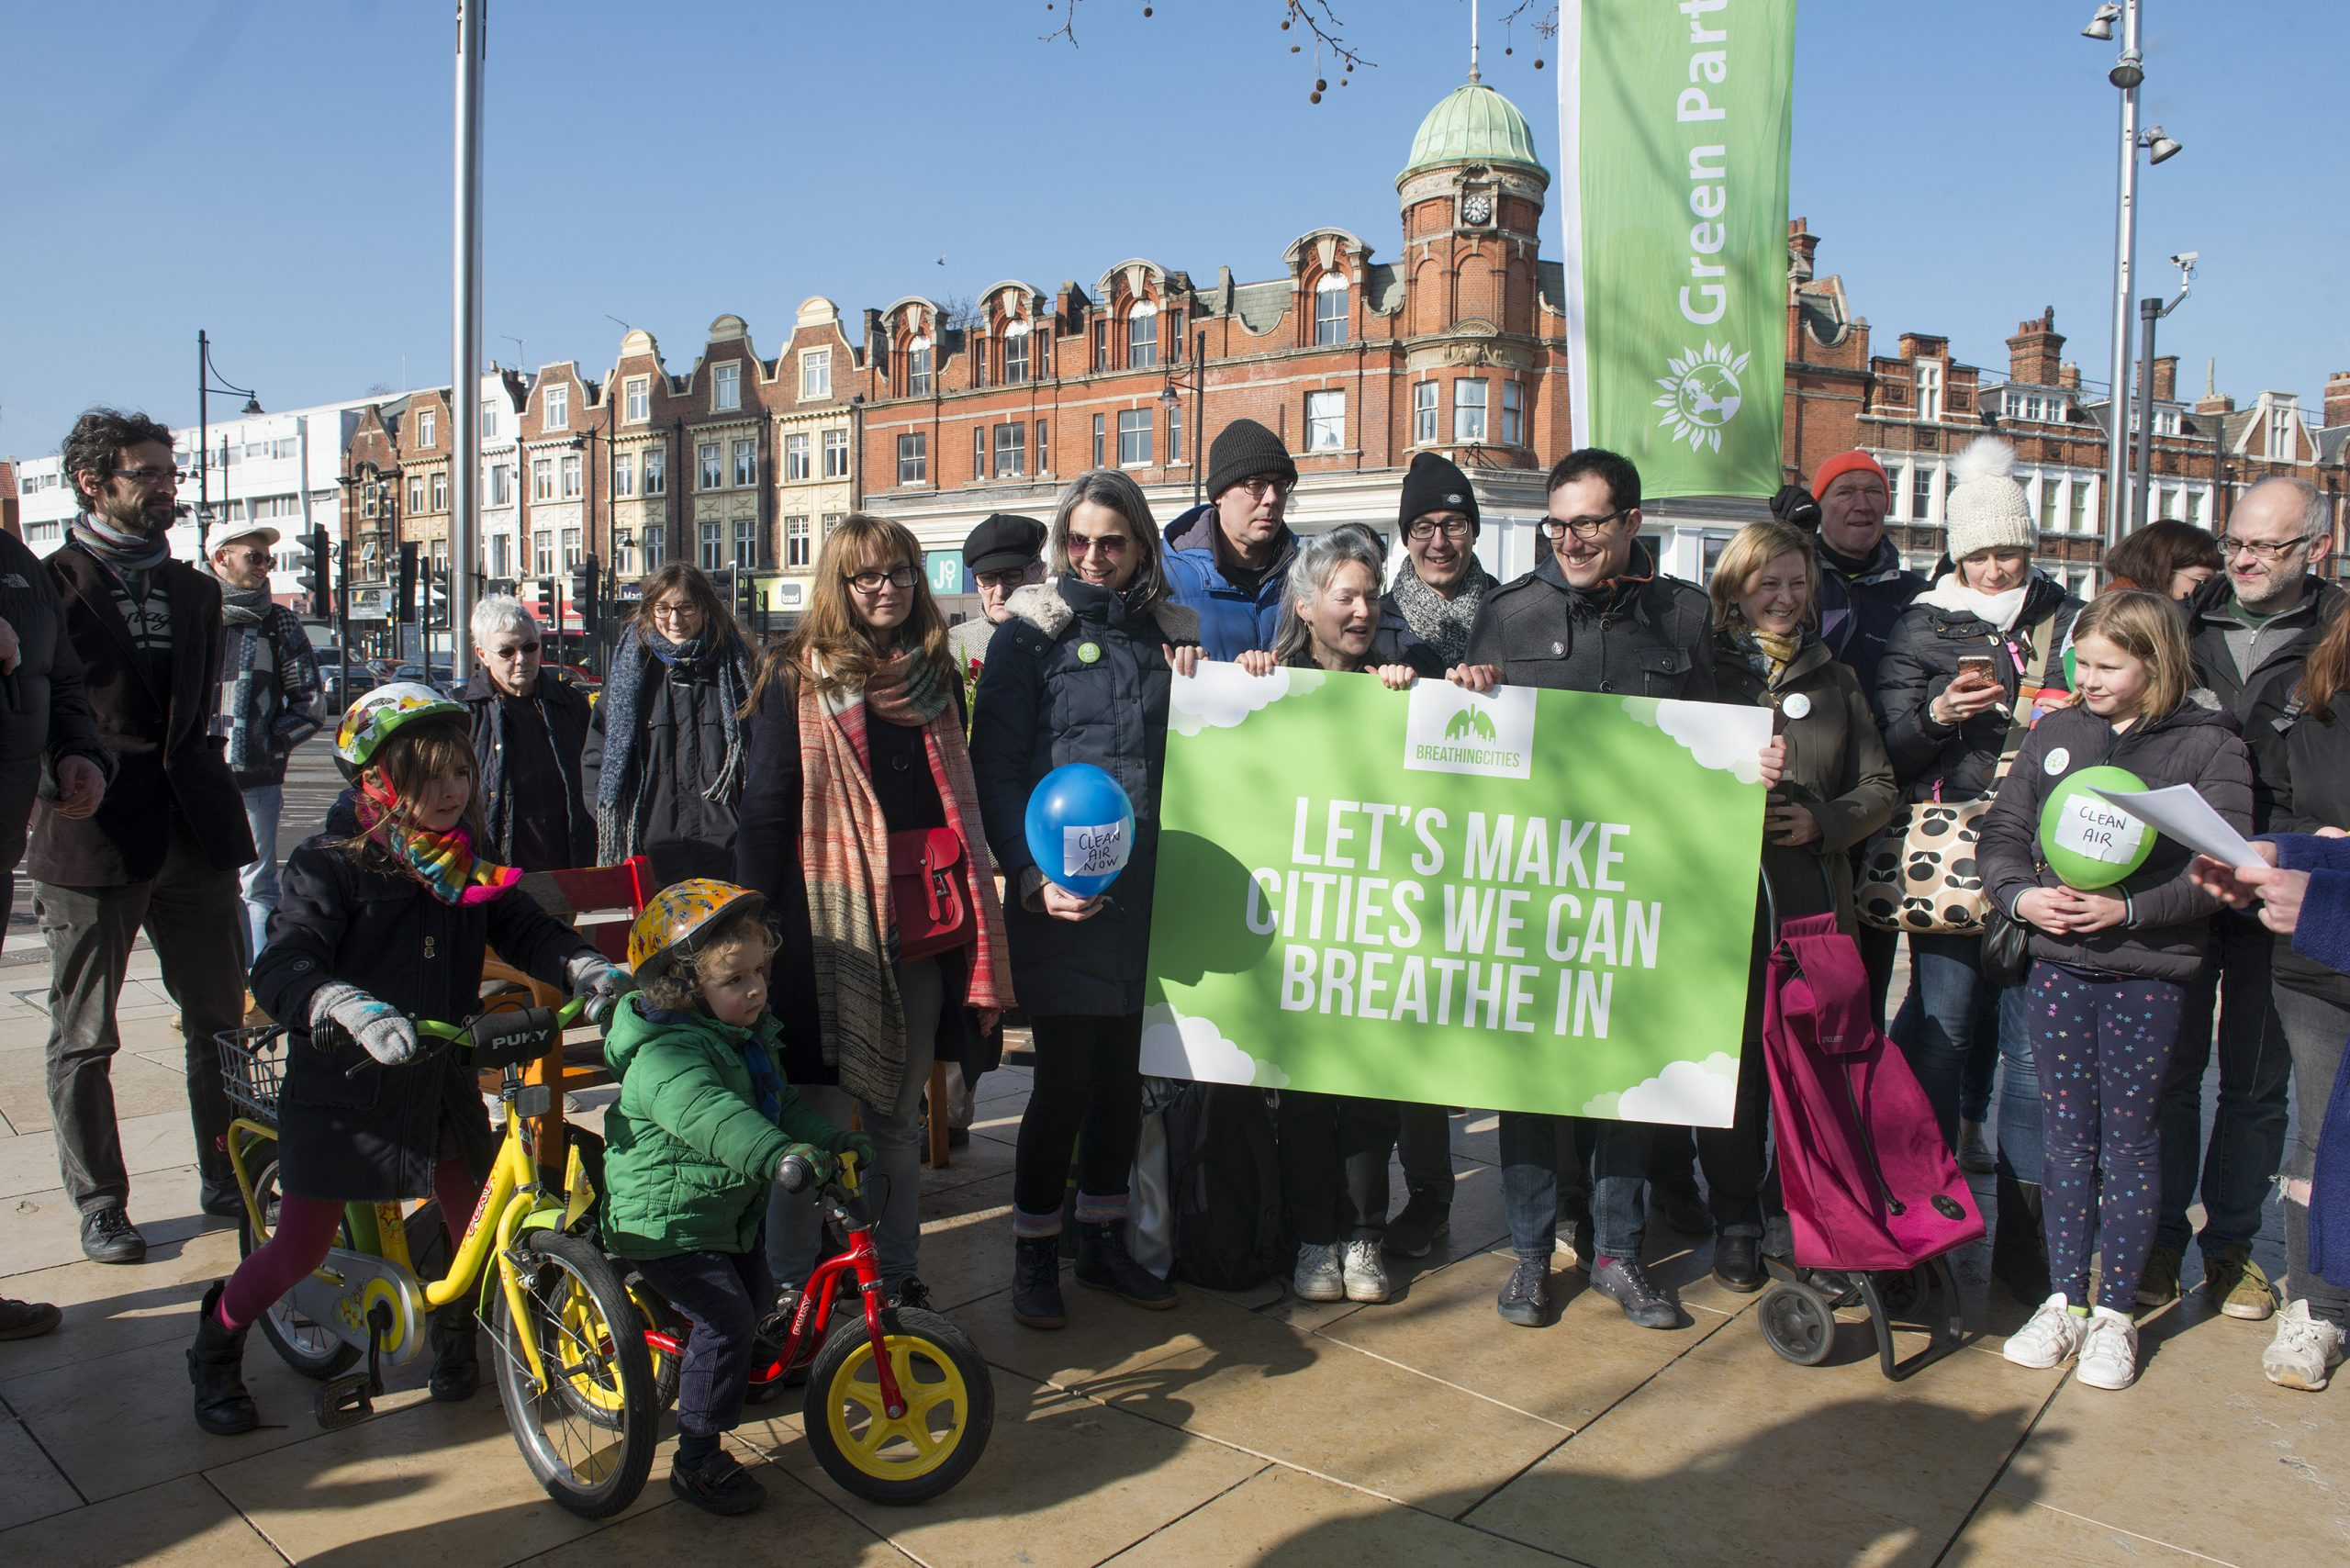 Green Party supporters in Windrush Square promoting the 'Breathi